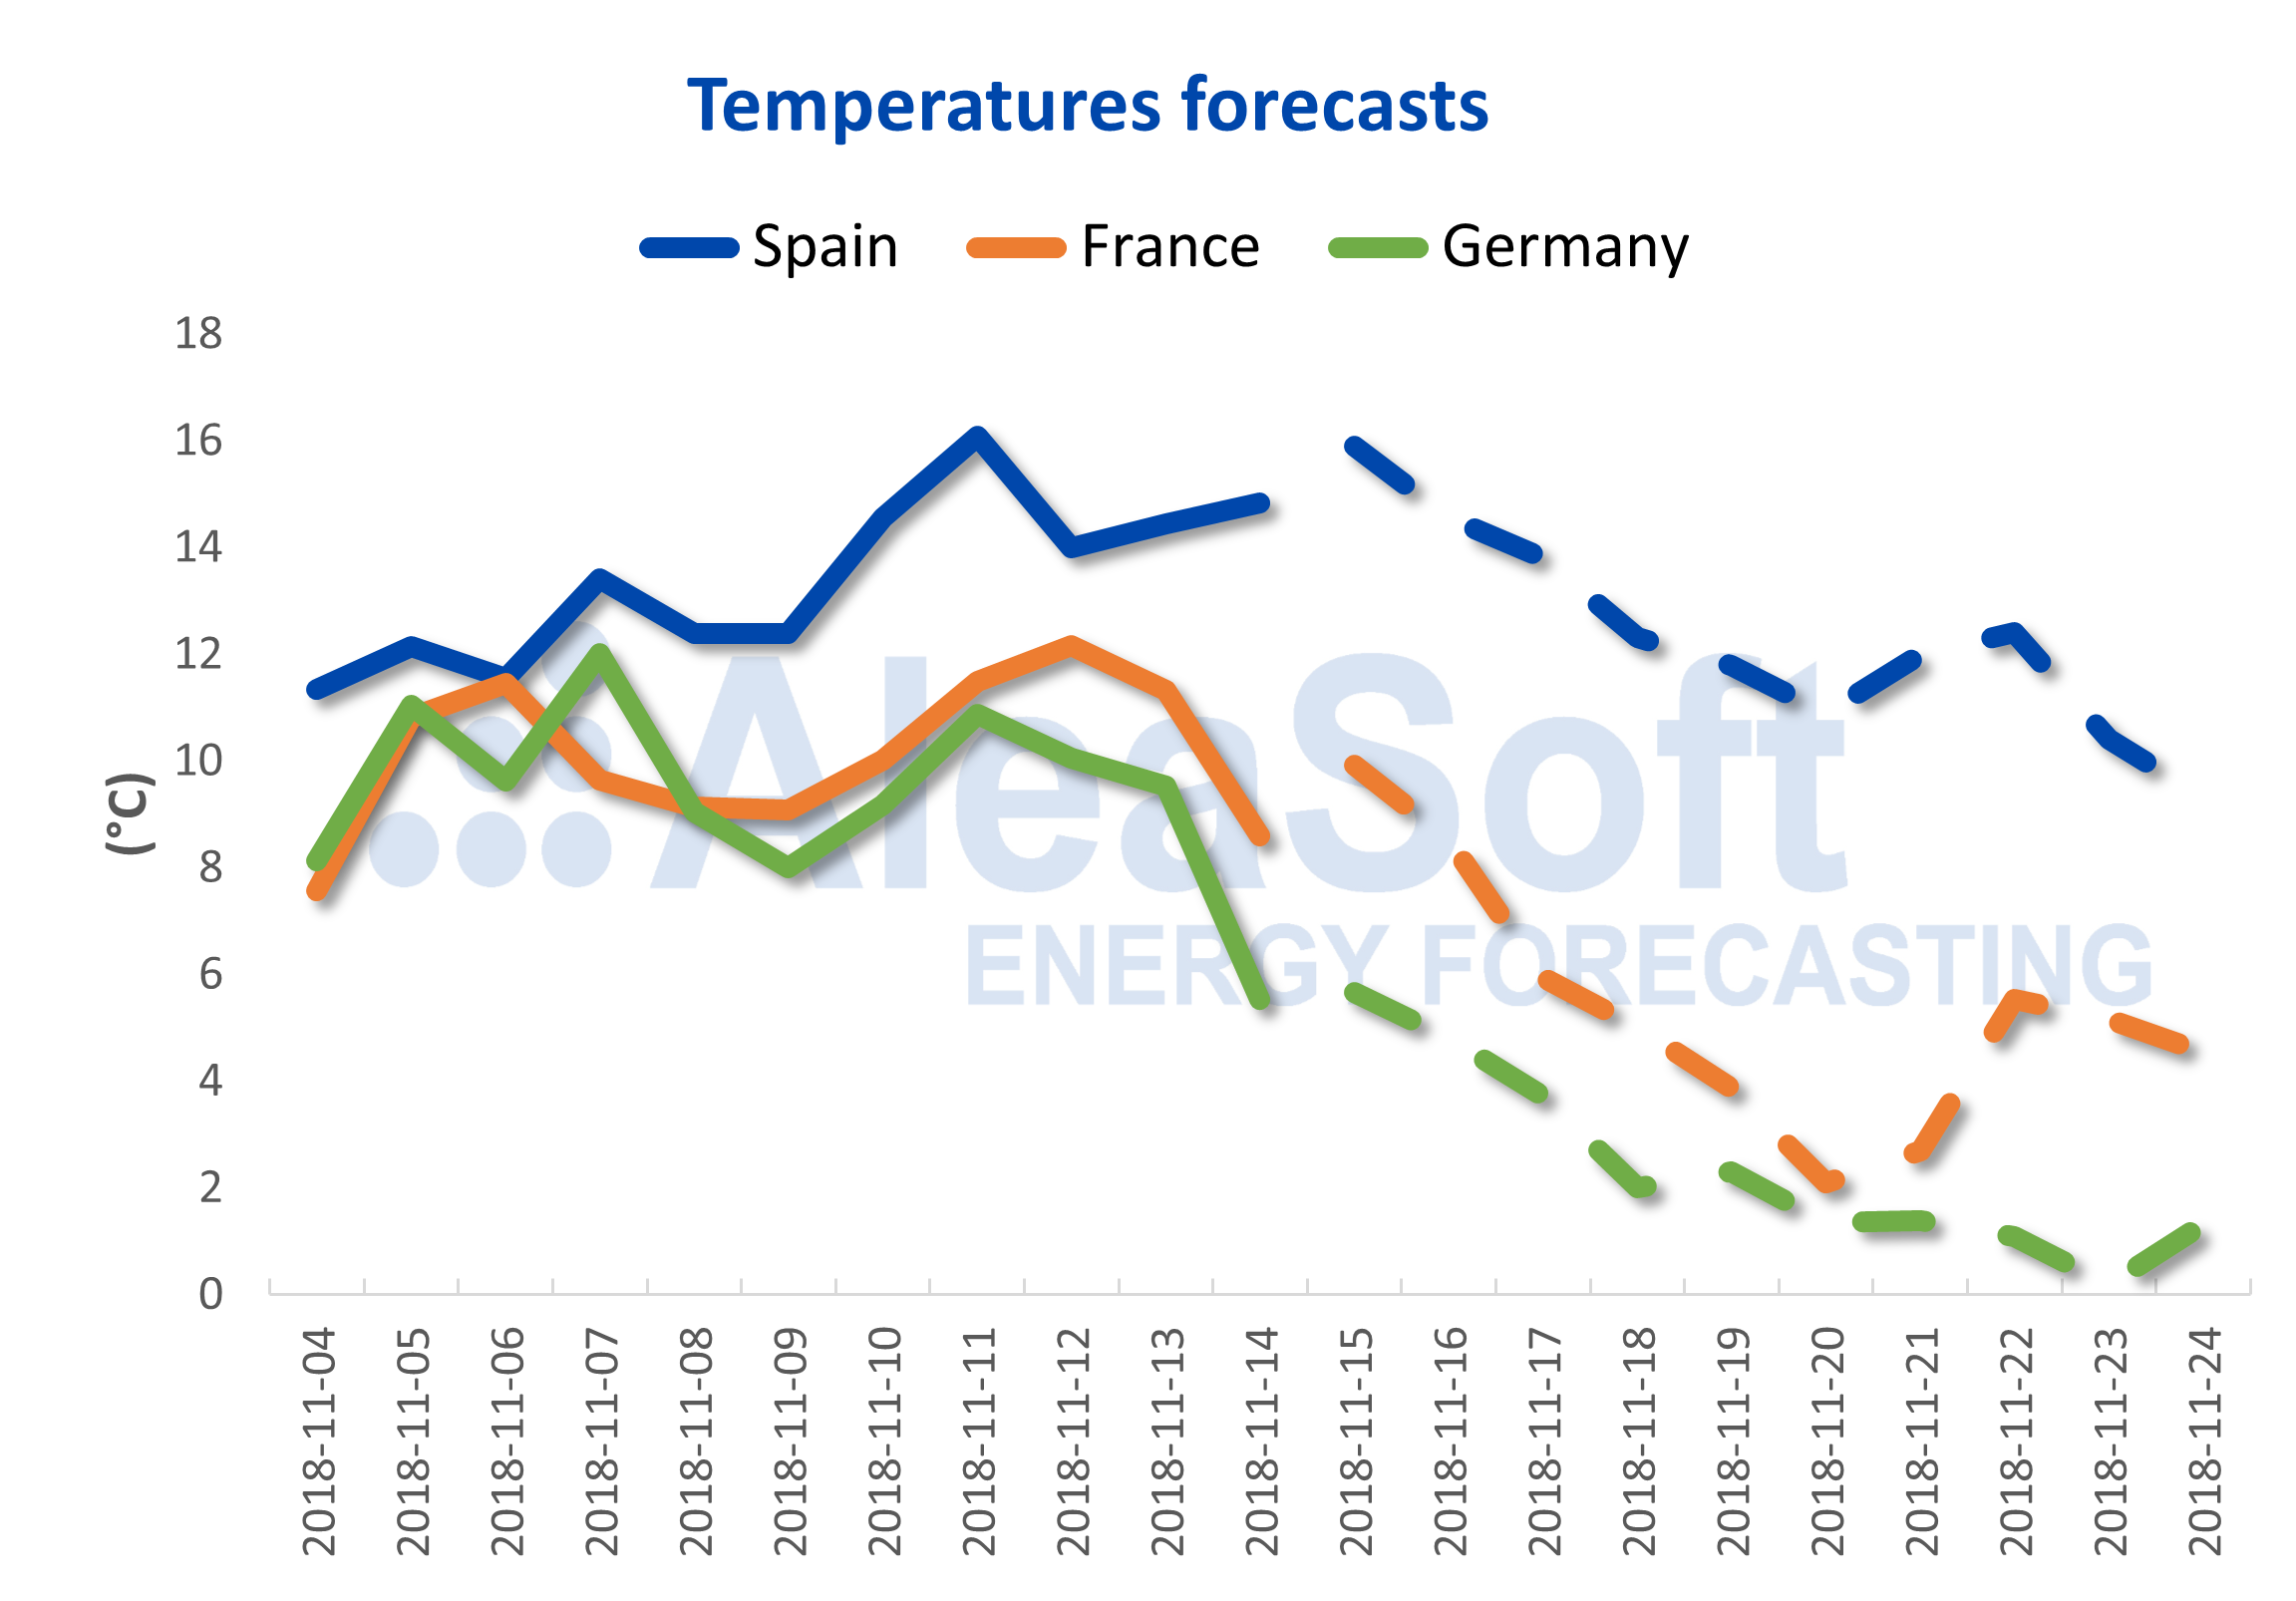 AleaSoft - Temperature forecast for France and Germany